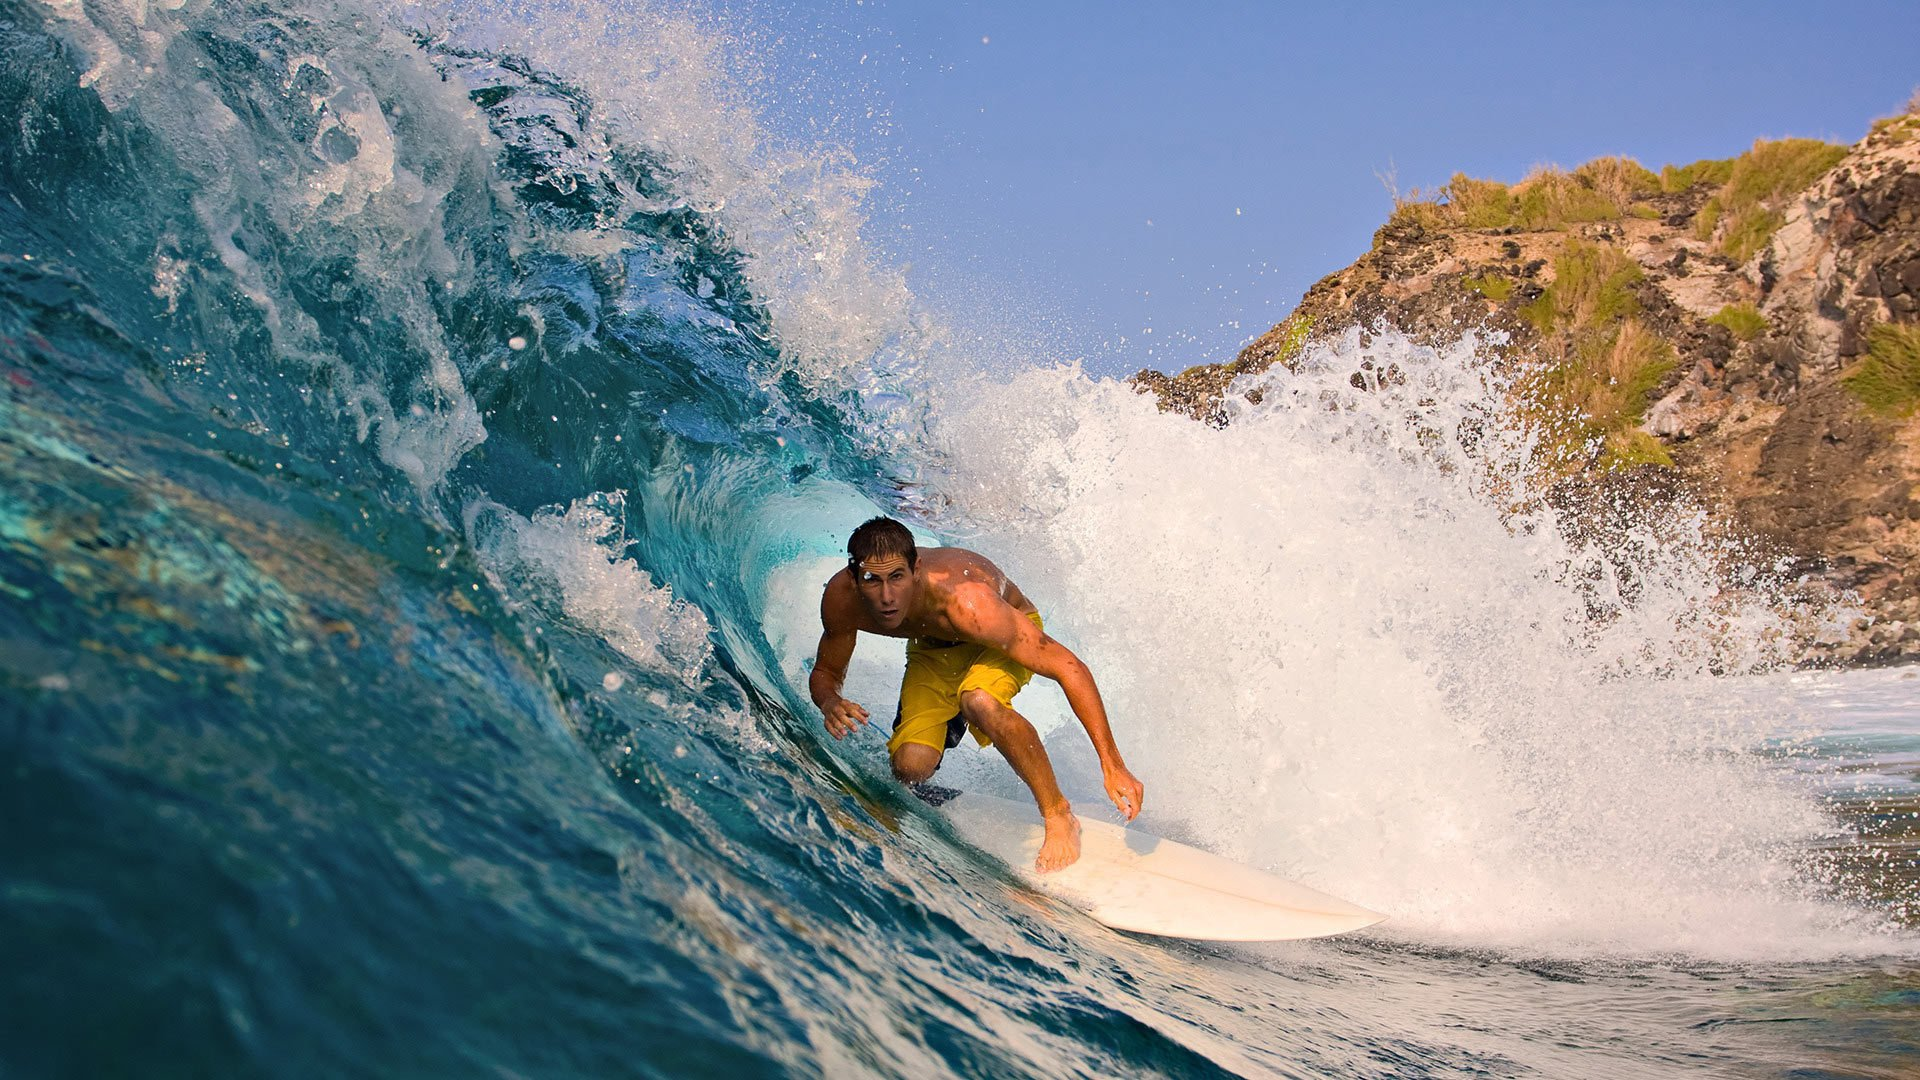 Wallpapersafari: Surfing Screensavers And Wallpaper